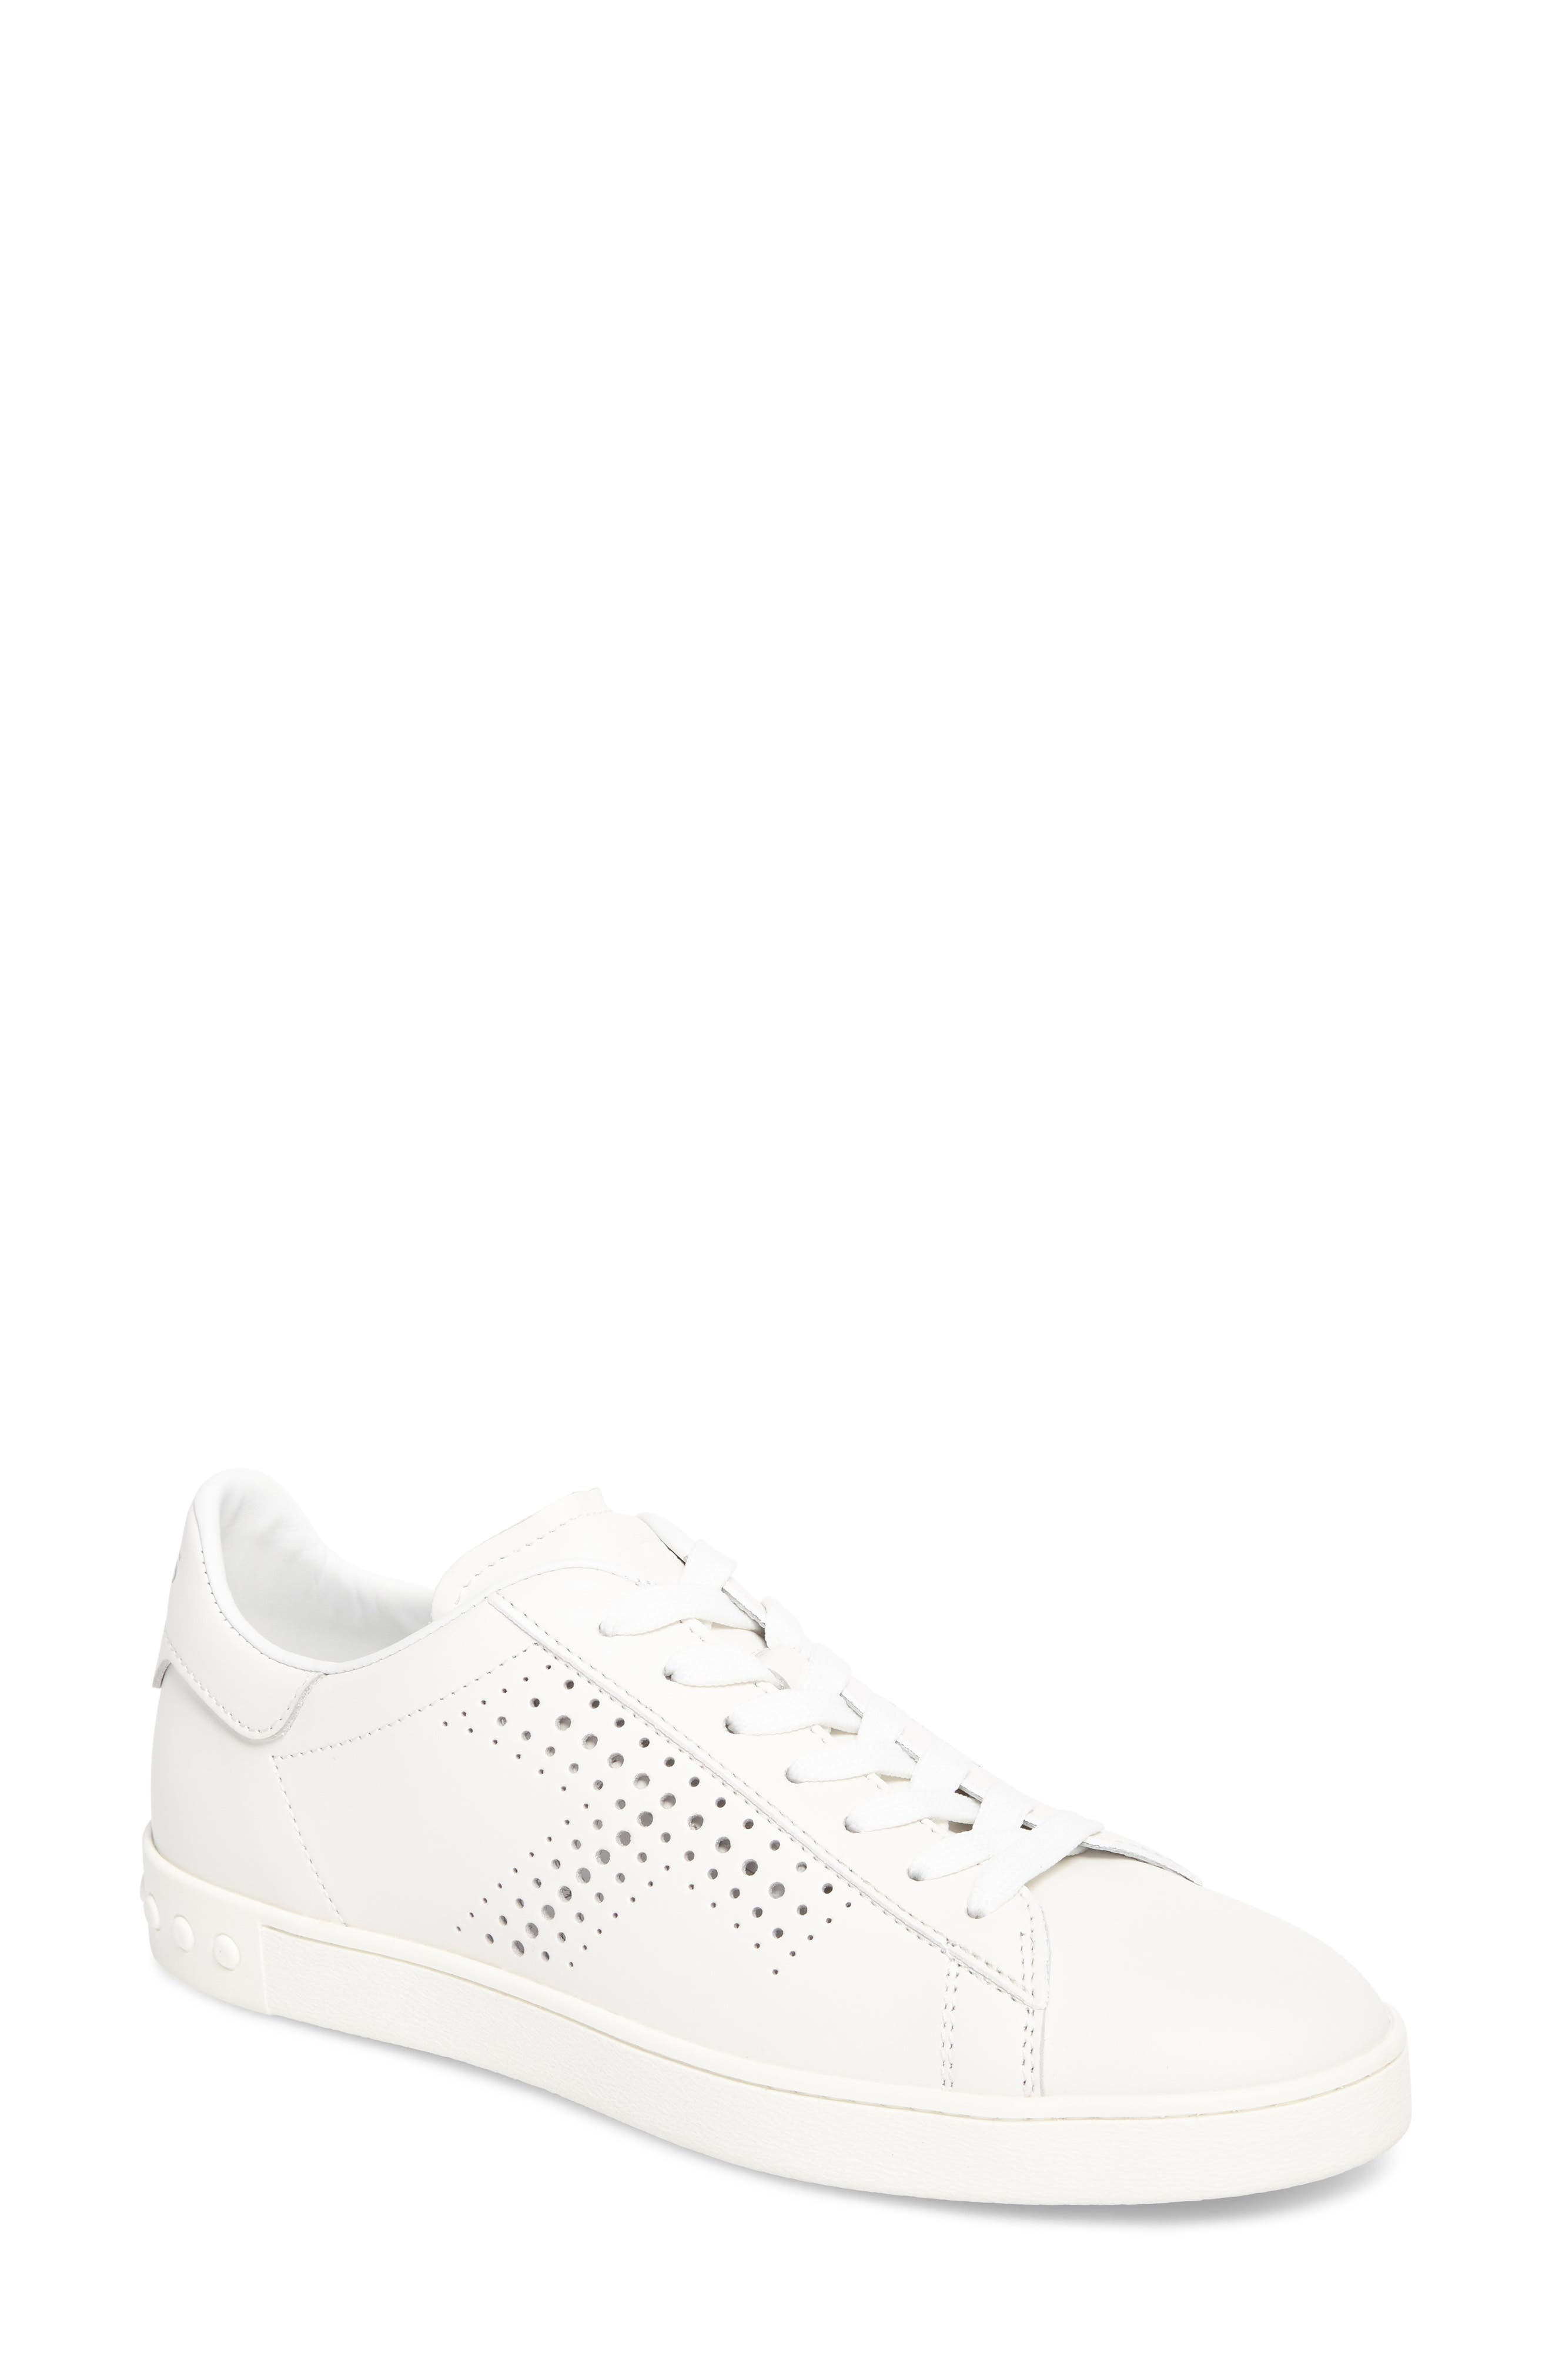 Perforated T Sneaker,                         Main,                         color, White